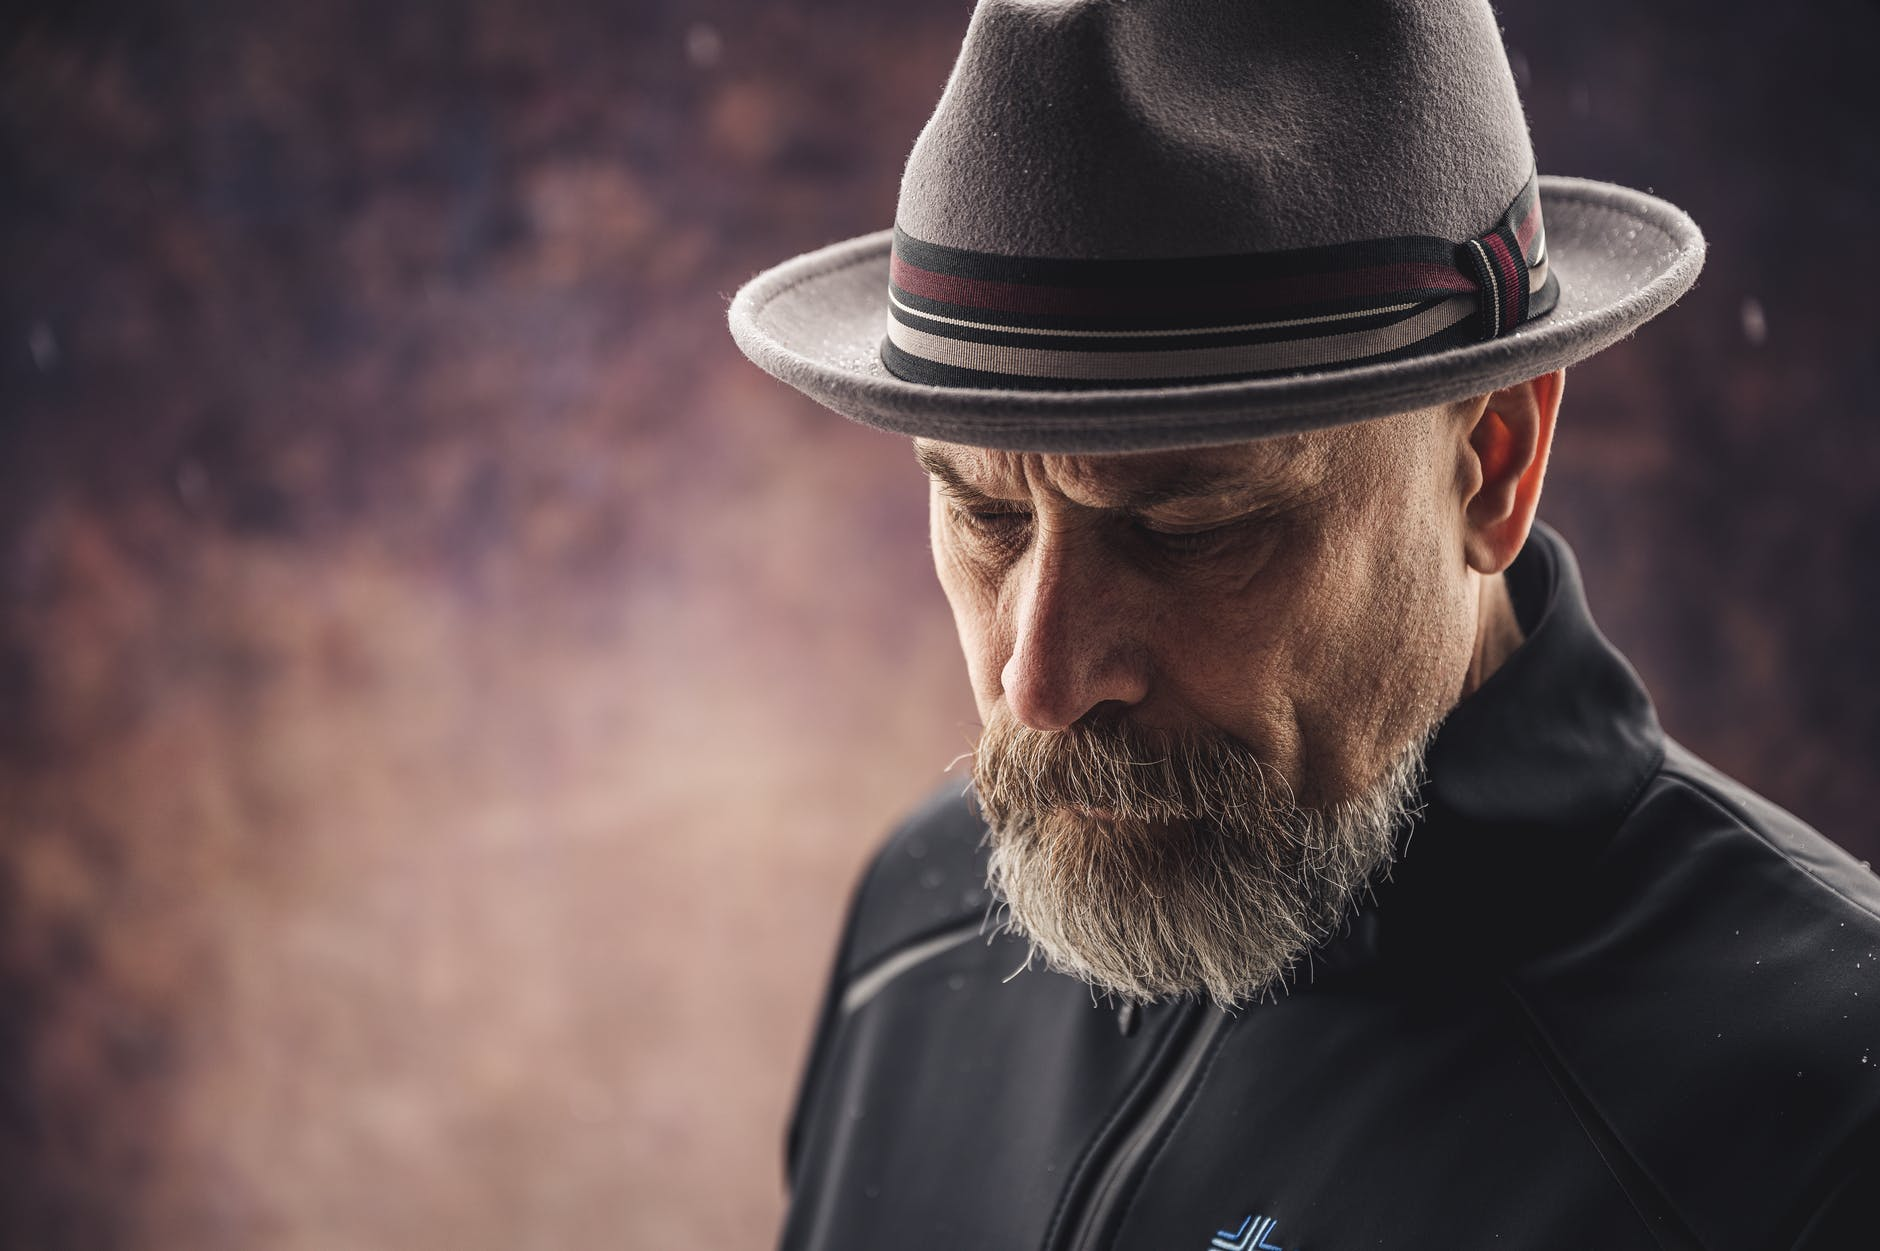 A bearded man with a hat | Source: Pexels